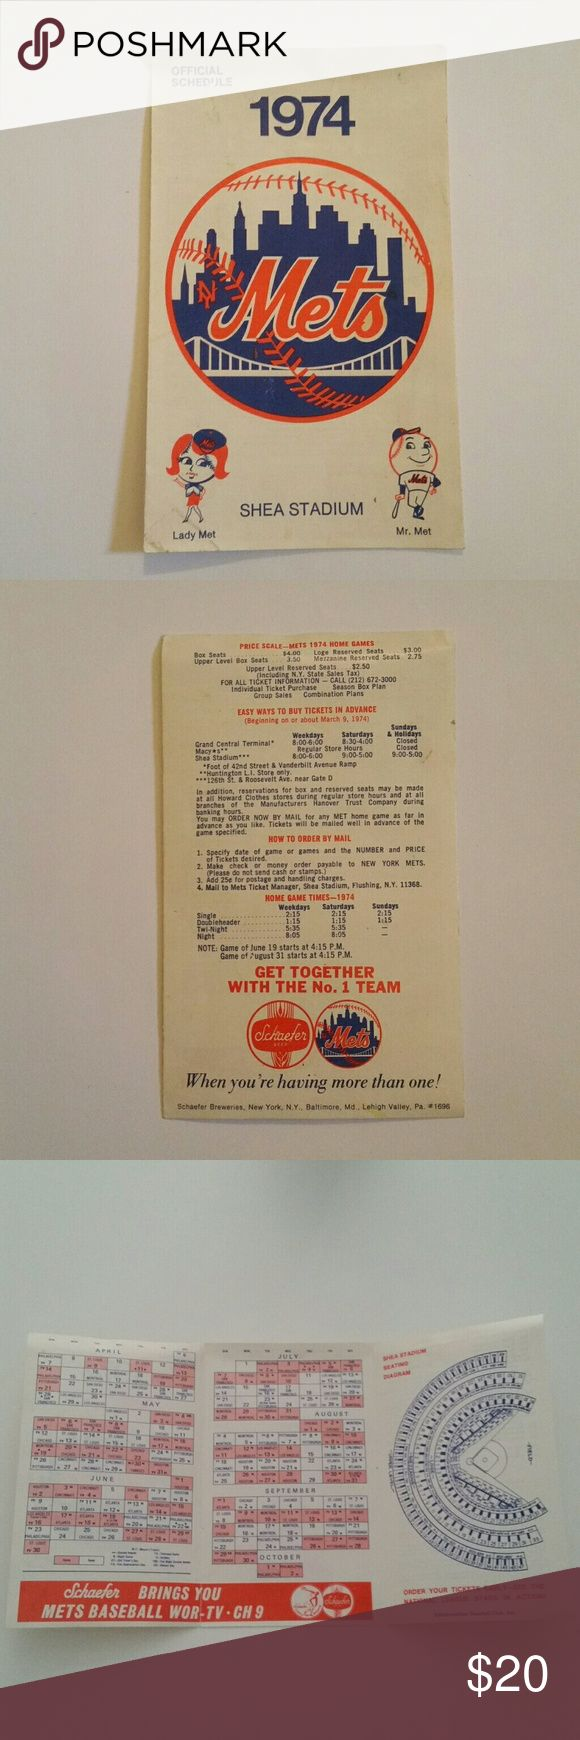 1974 NY Mets Shea Stadium Schedule 1974 NY Mets Shea Stadium Schedule vintage sports memorabilia. Authentic. As seen in photos. Perfect fathers day gift for the right new York baseball fan. mets Other